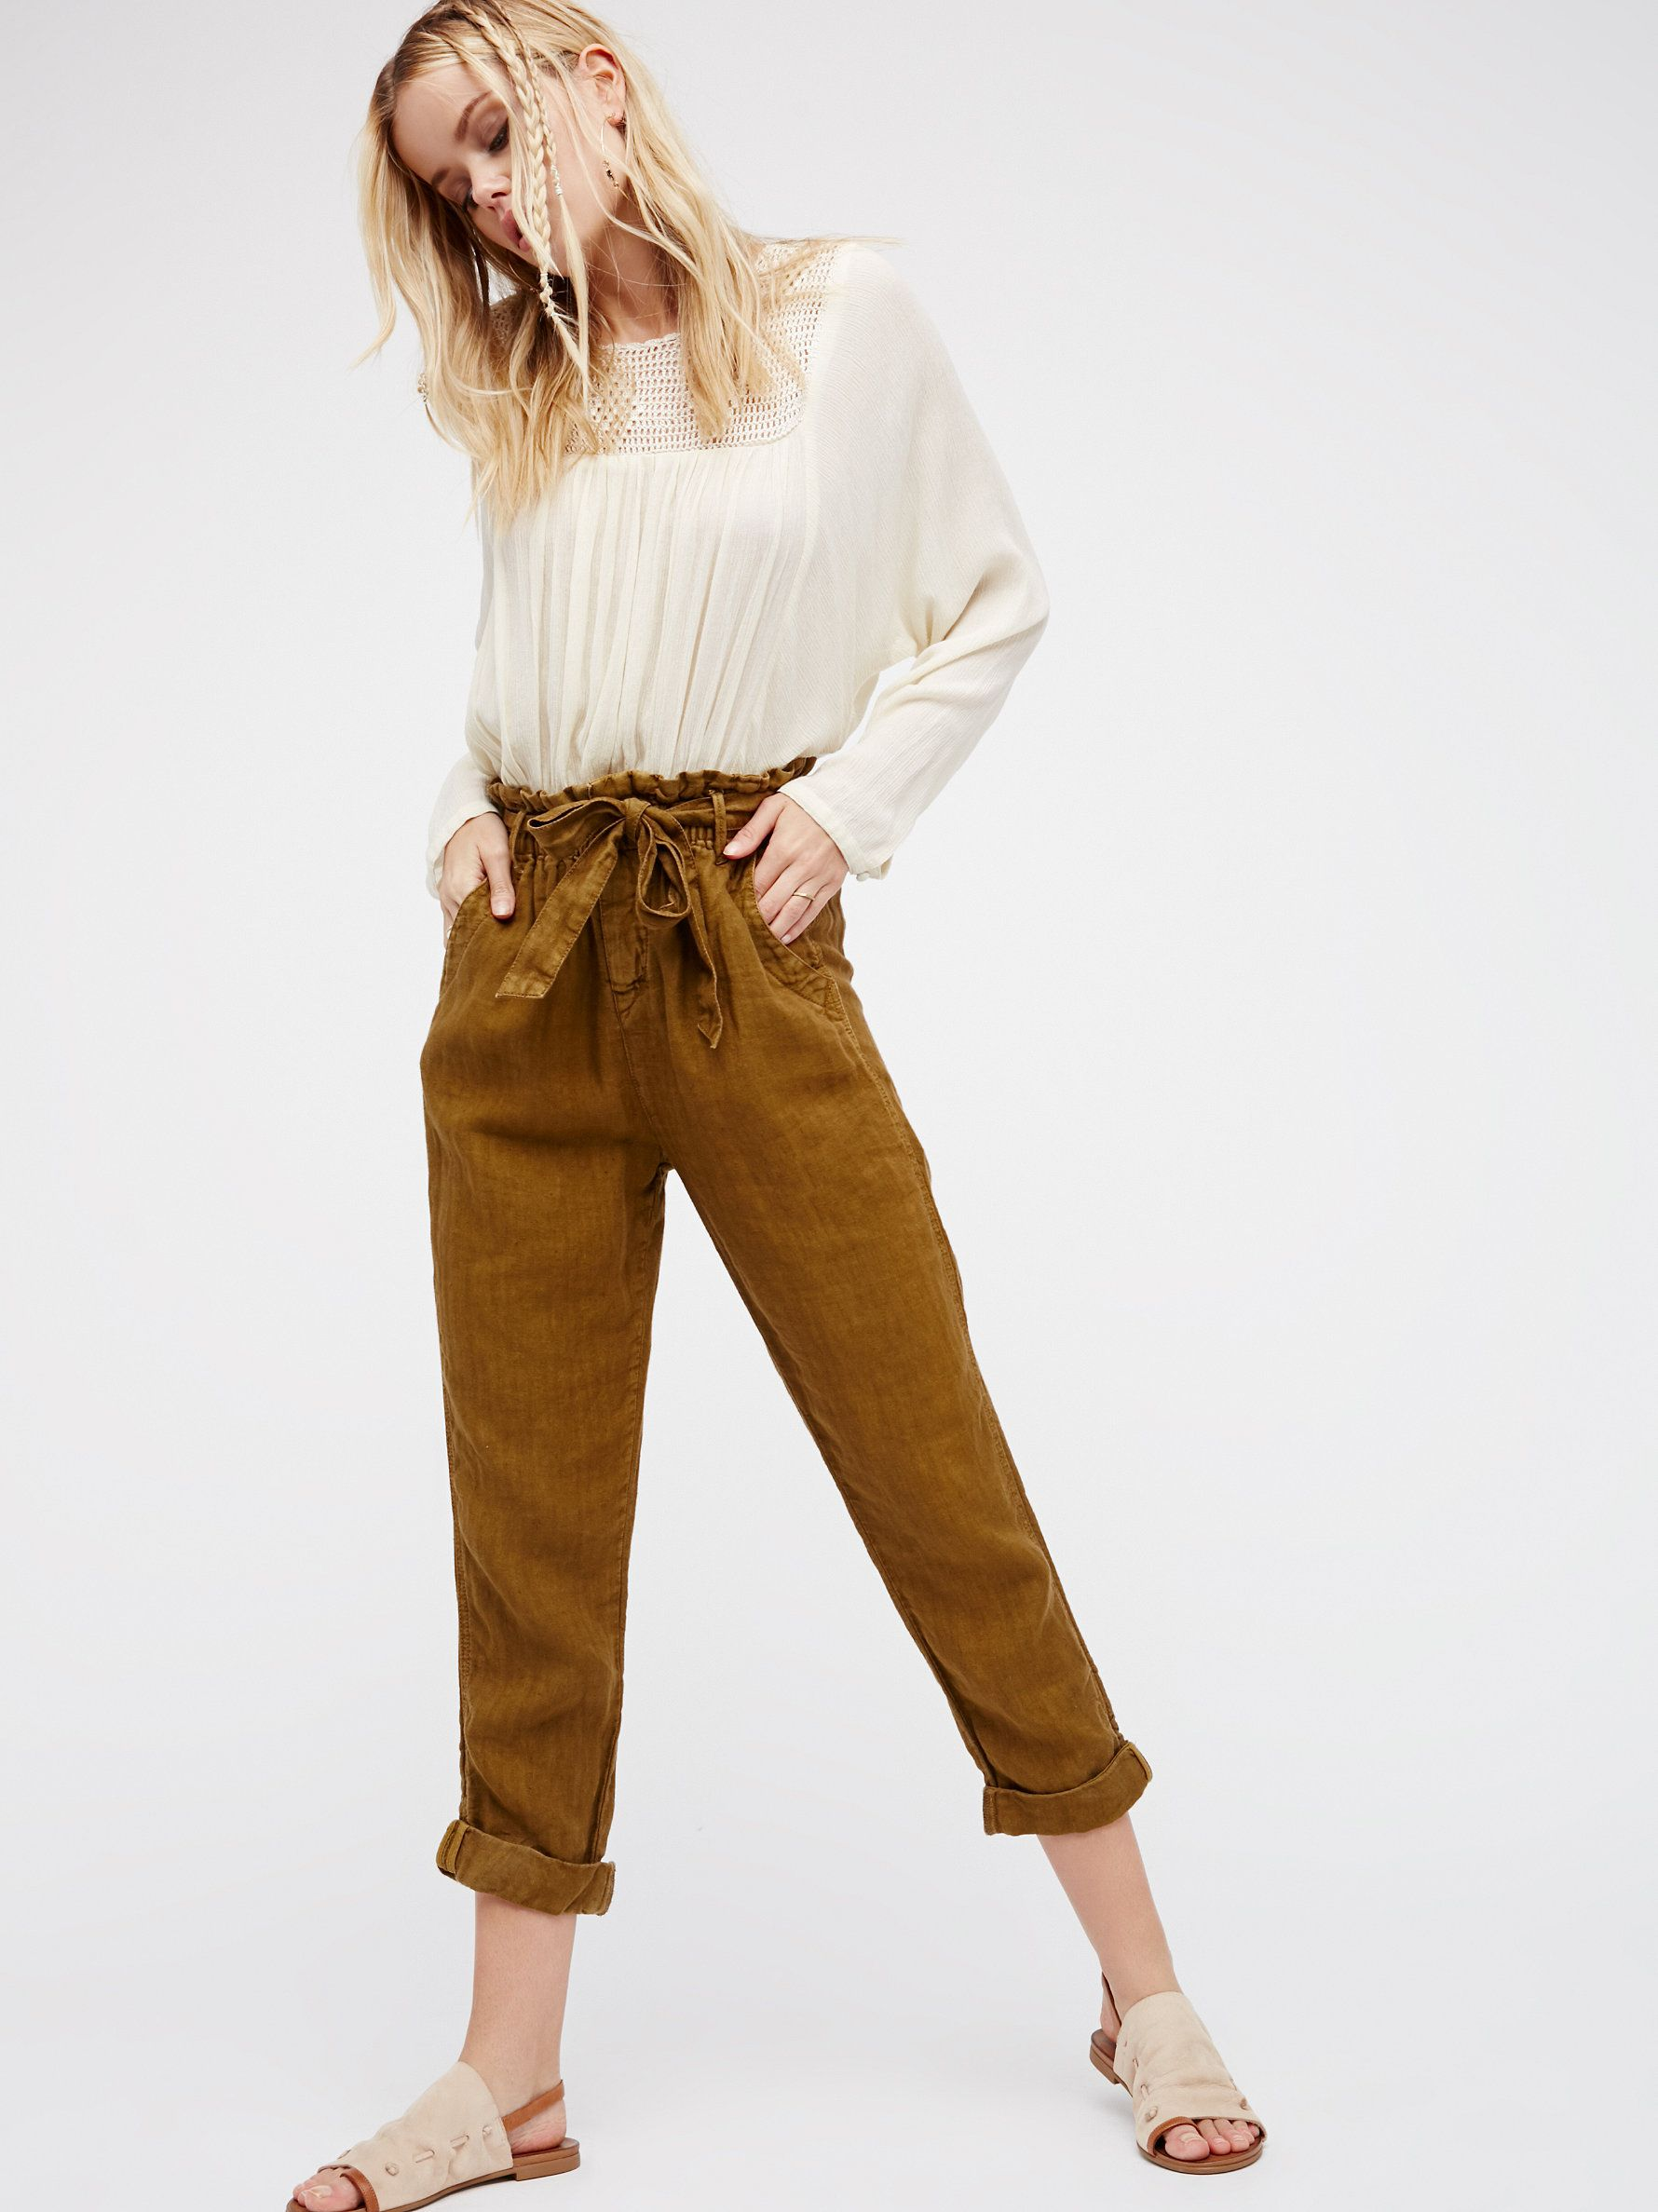 52943e1d8d Like This Paper Bag Pant | Lightweight linen paper bag style pants. *  Button fly. * Four-pocket style. * Adjustable tie belt. * Cropped inseam.